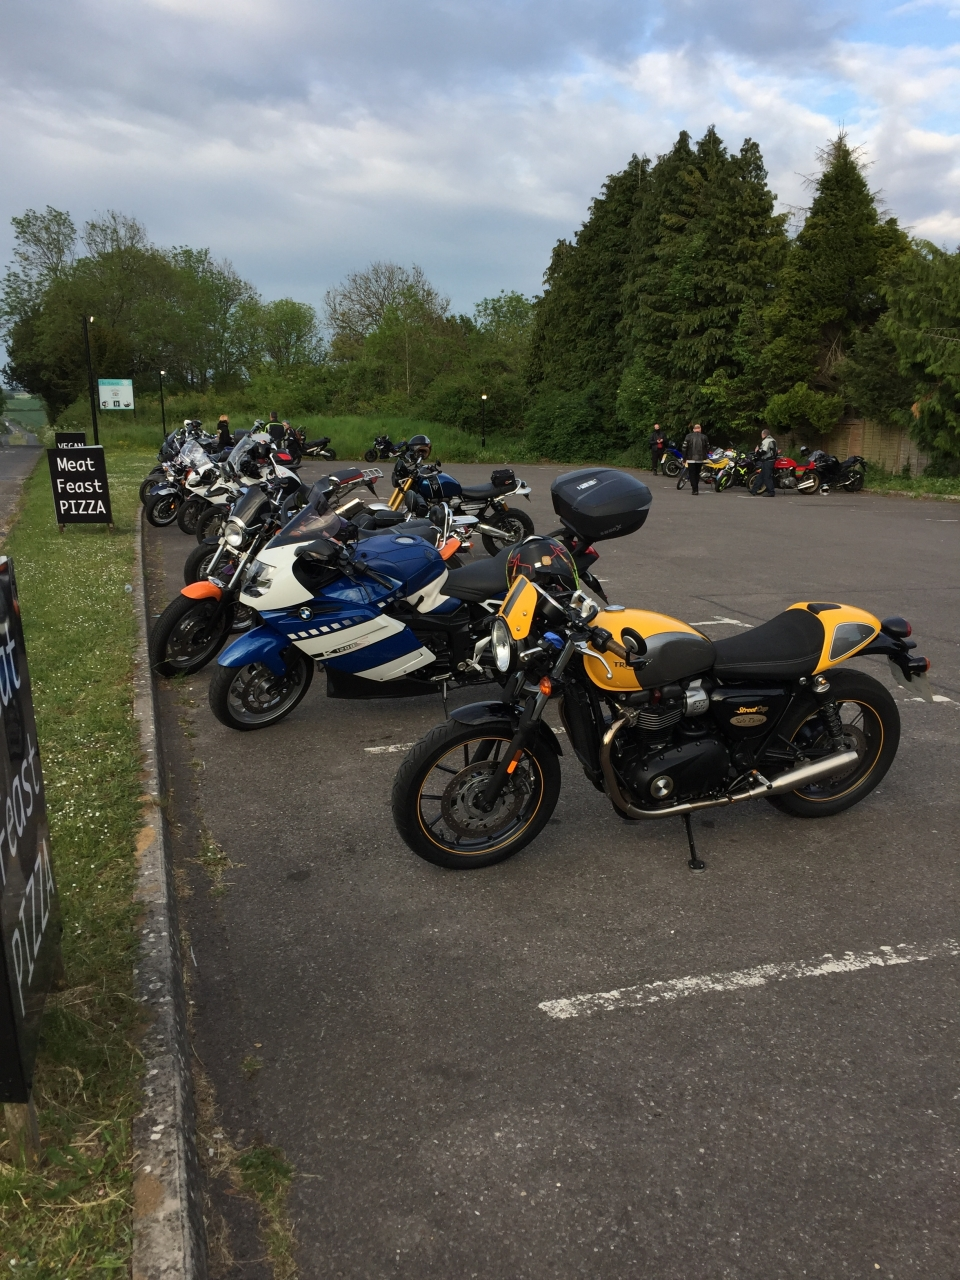 Bike night at The Haven, Salisbury. Not a huge turnout but weather not good.